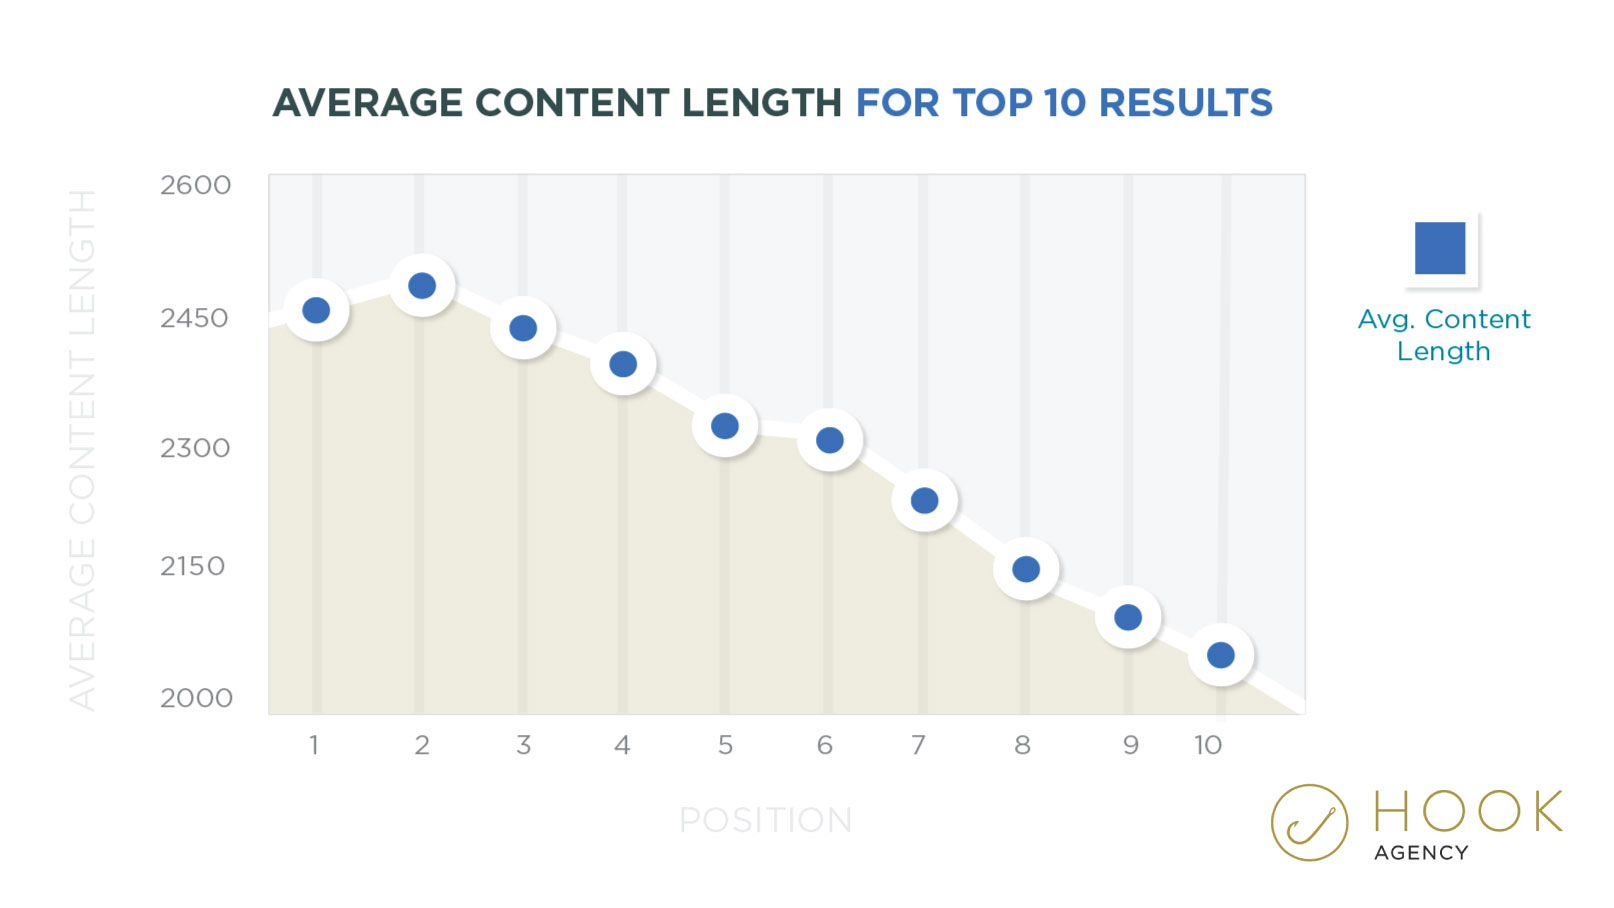 Average Content Length in the Top 10 Search Results